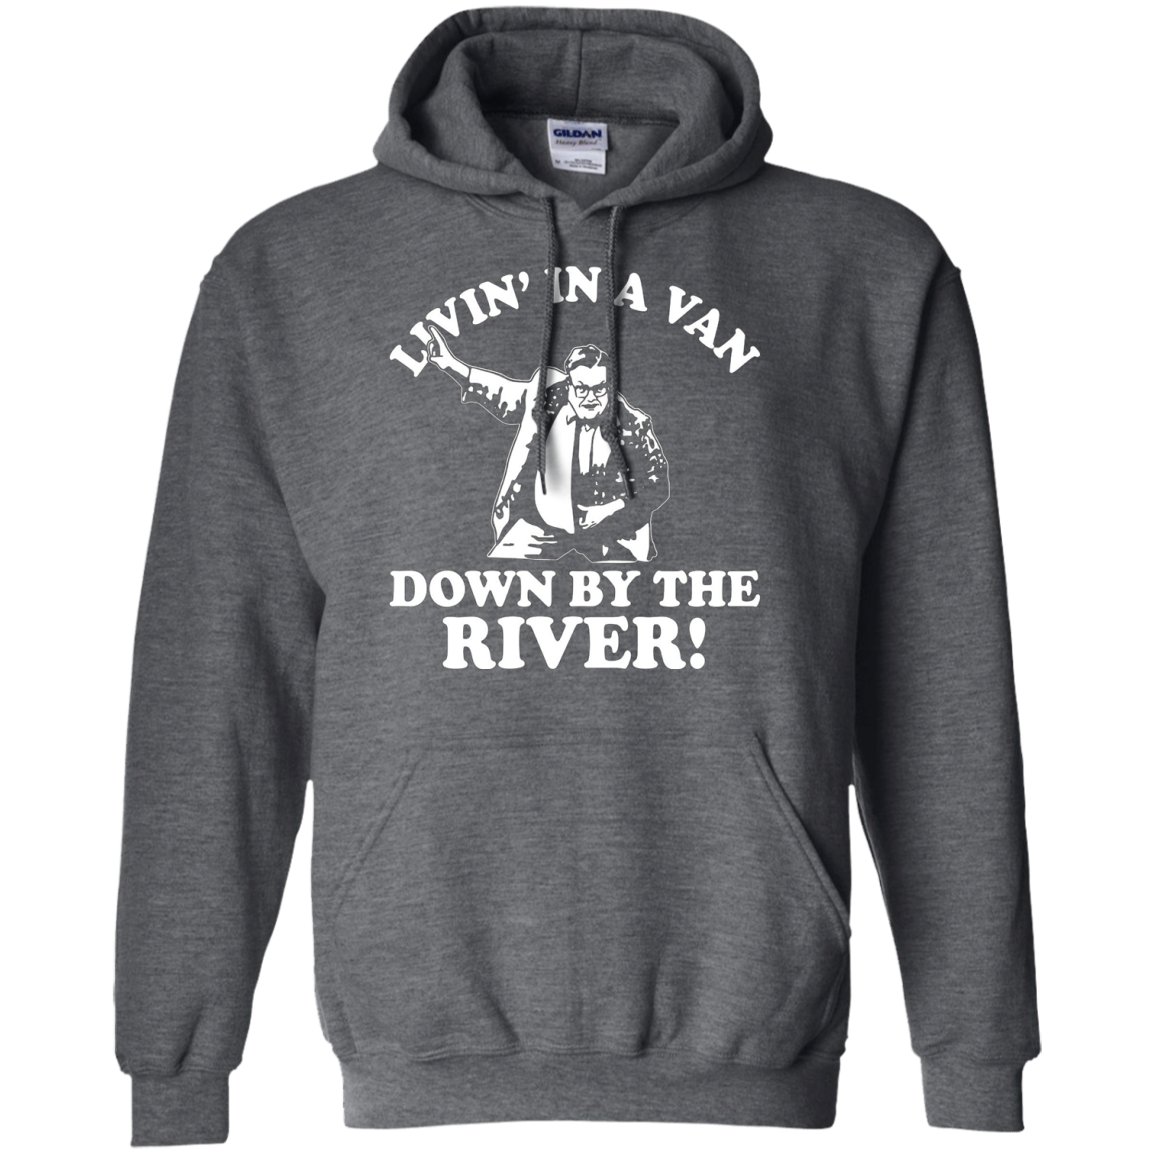 I live in a van down by the river t-shirt